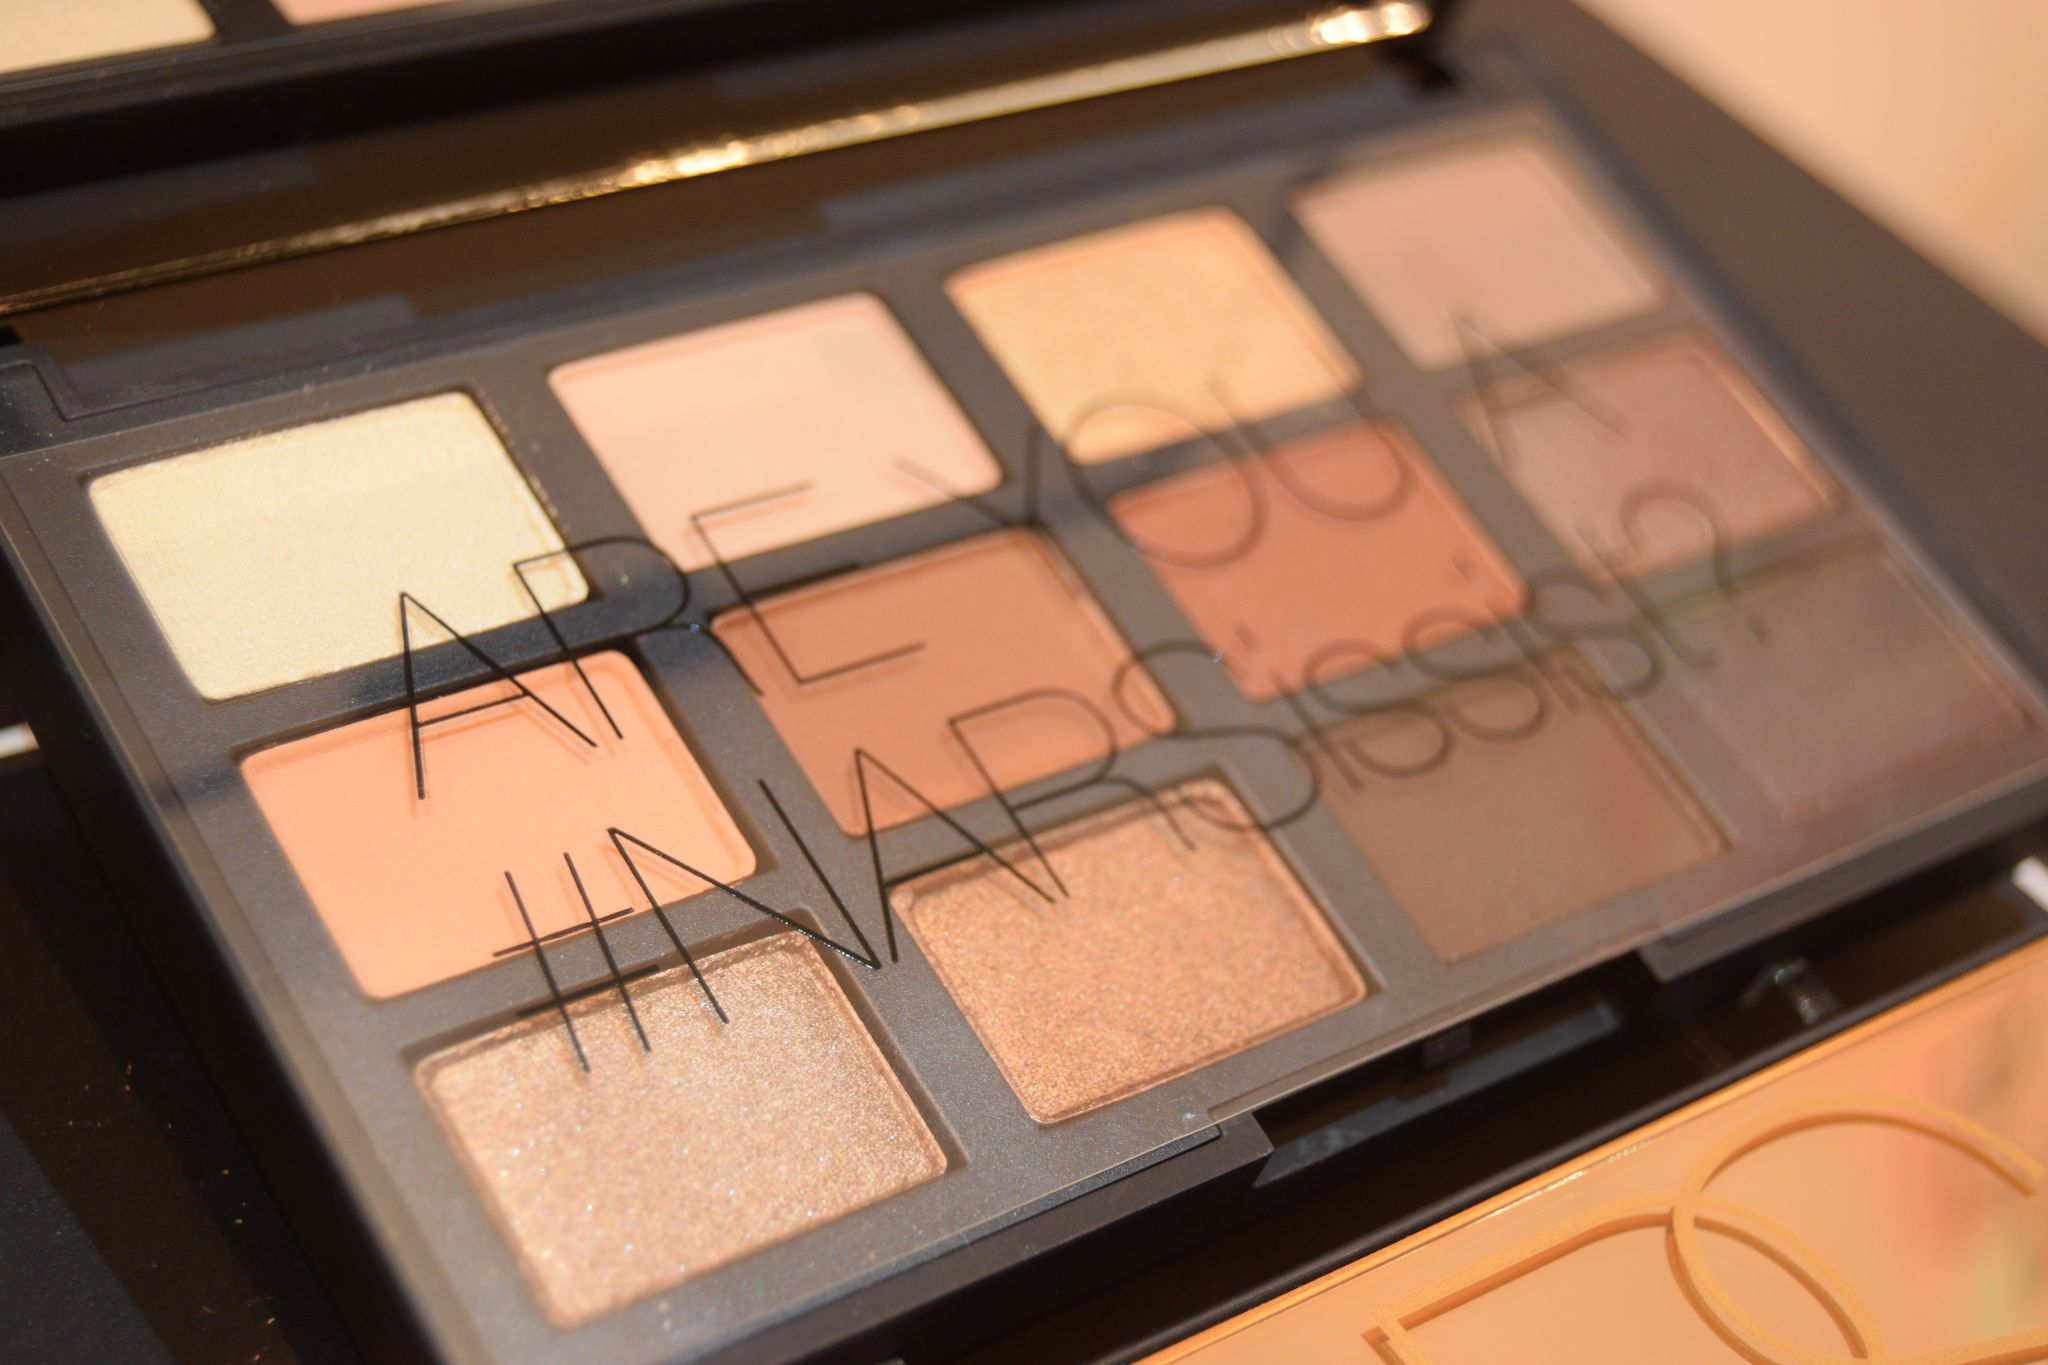 DSC 2066 1440x960 - House of Fraser EXCLUSIVE: Nars Loaded Palette